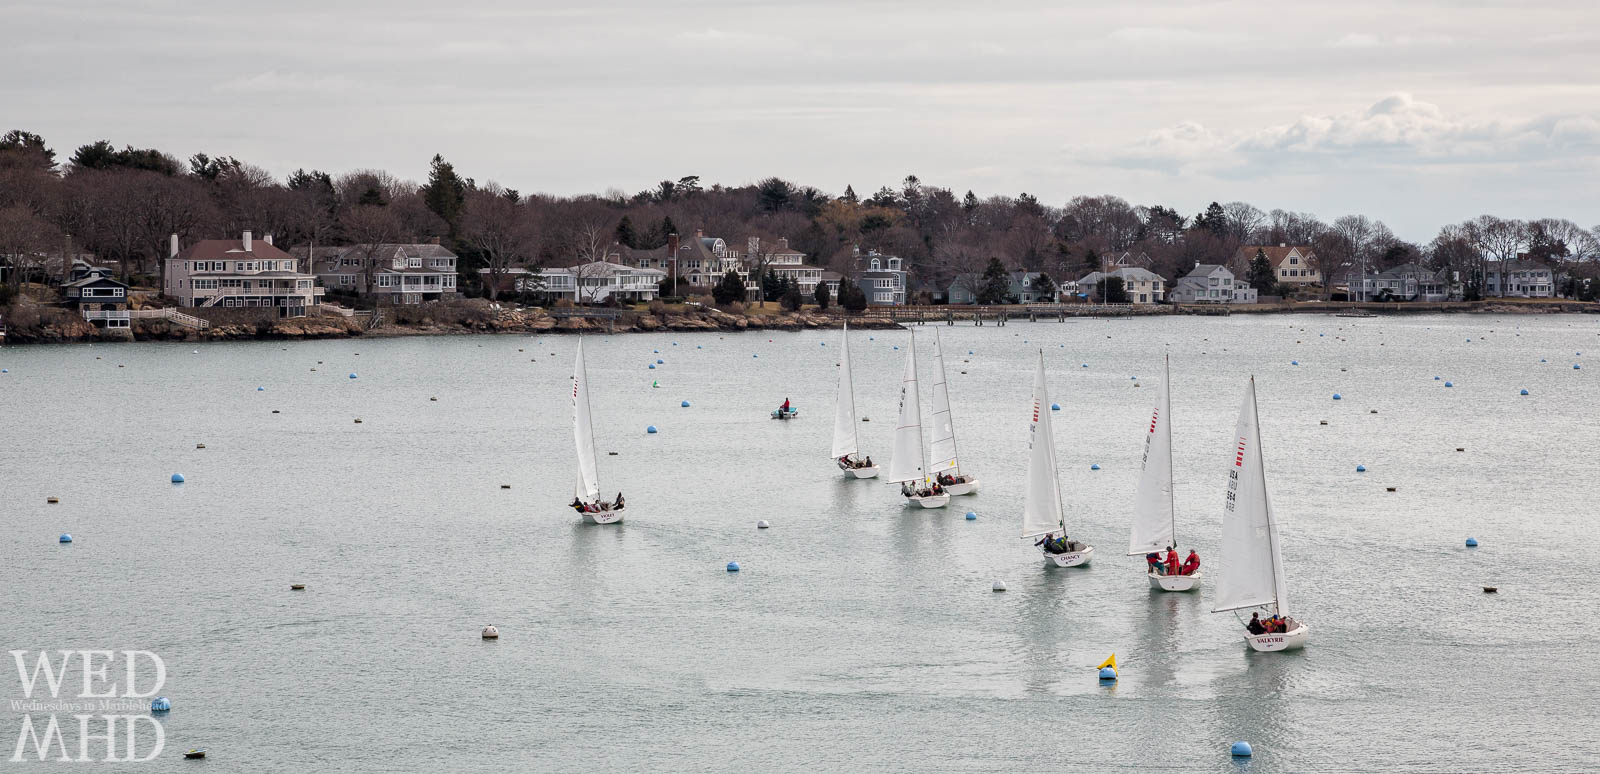 An image of boats practicing within Marblehead harbor during frostbite sailing